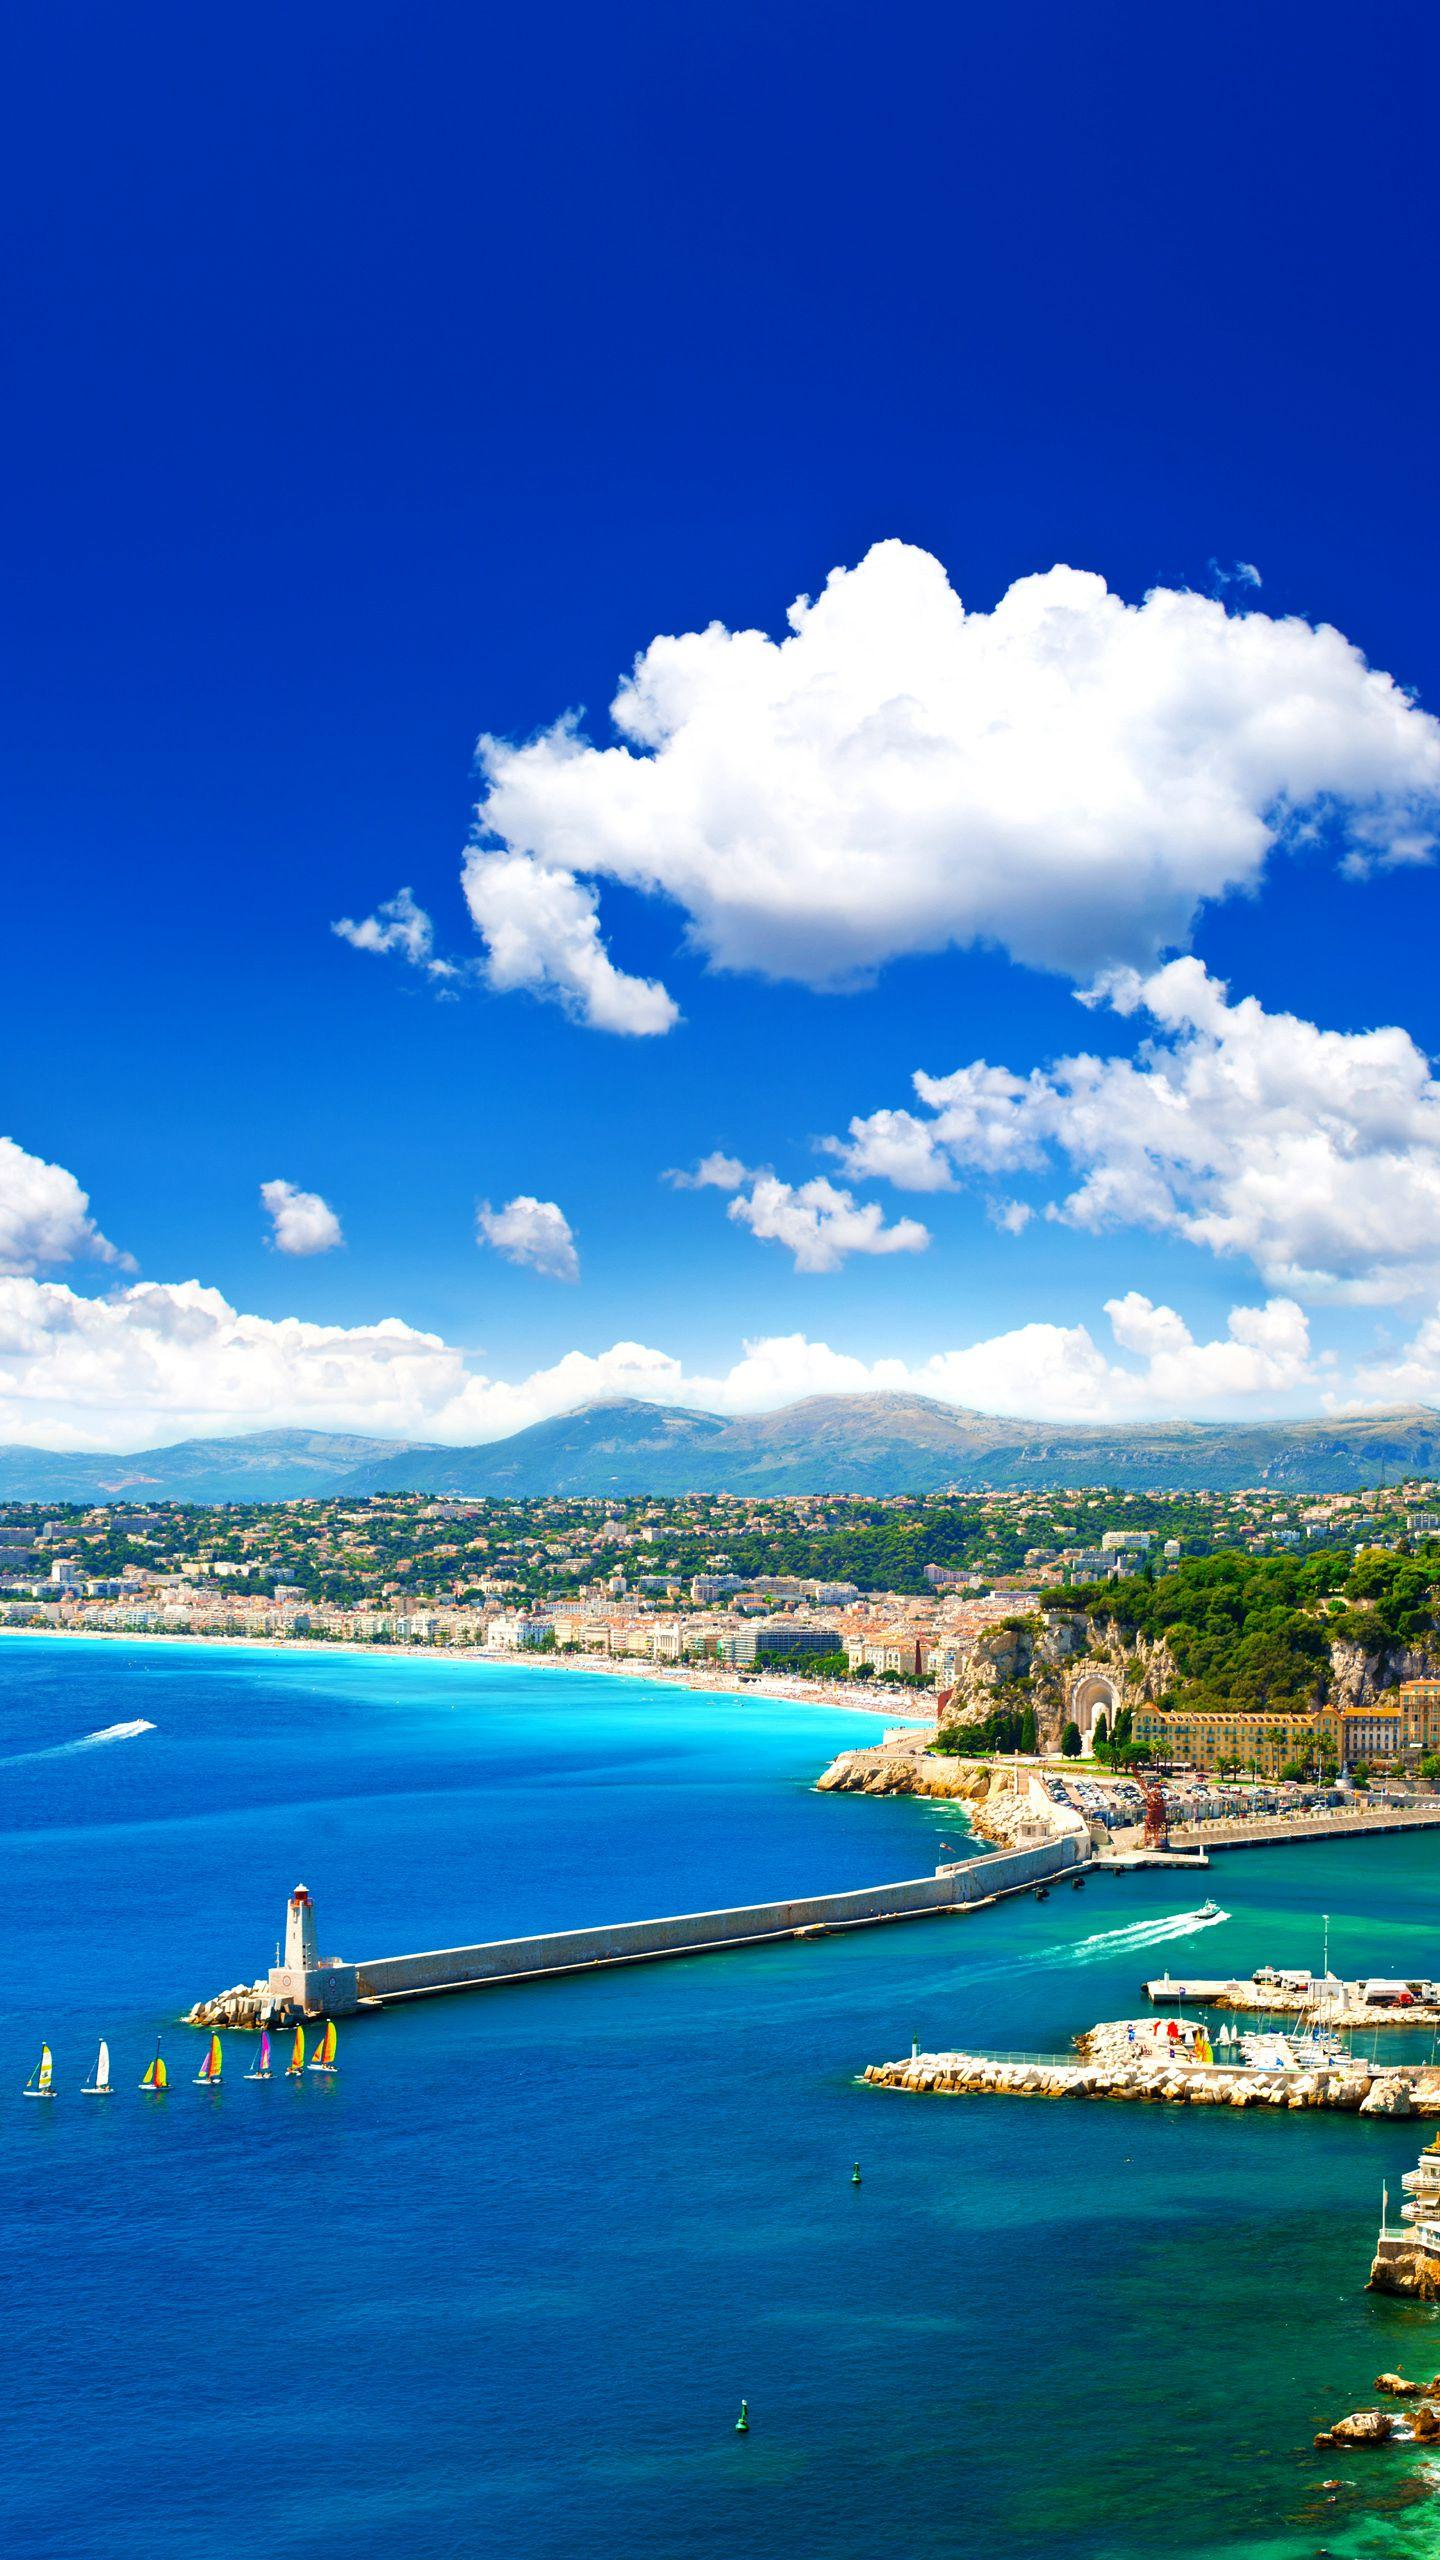 France - Nice. Nice all year round, the blue Mediterranean and the hustle and bustle of the Alps are the city's eternal landmark.